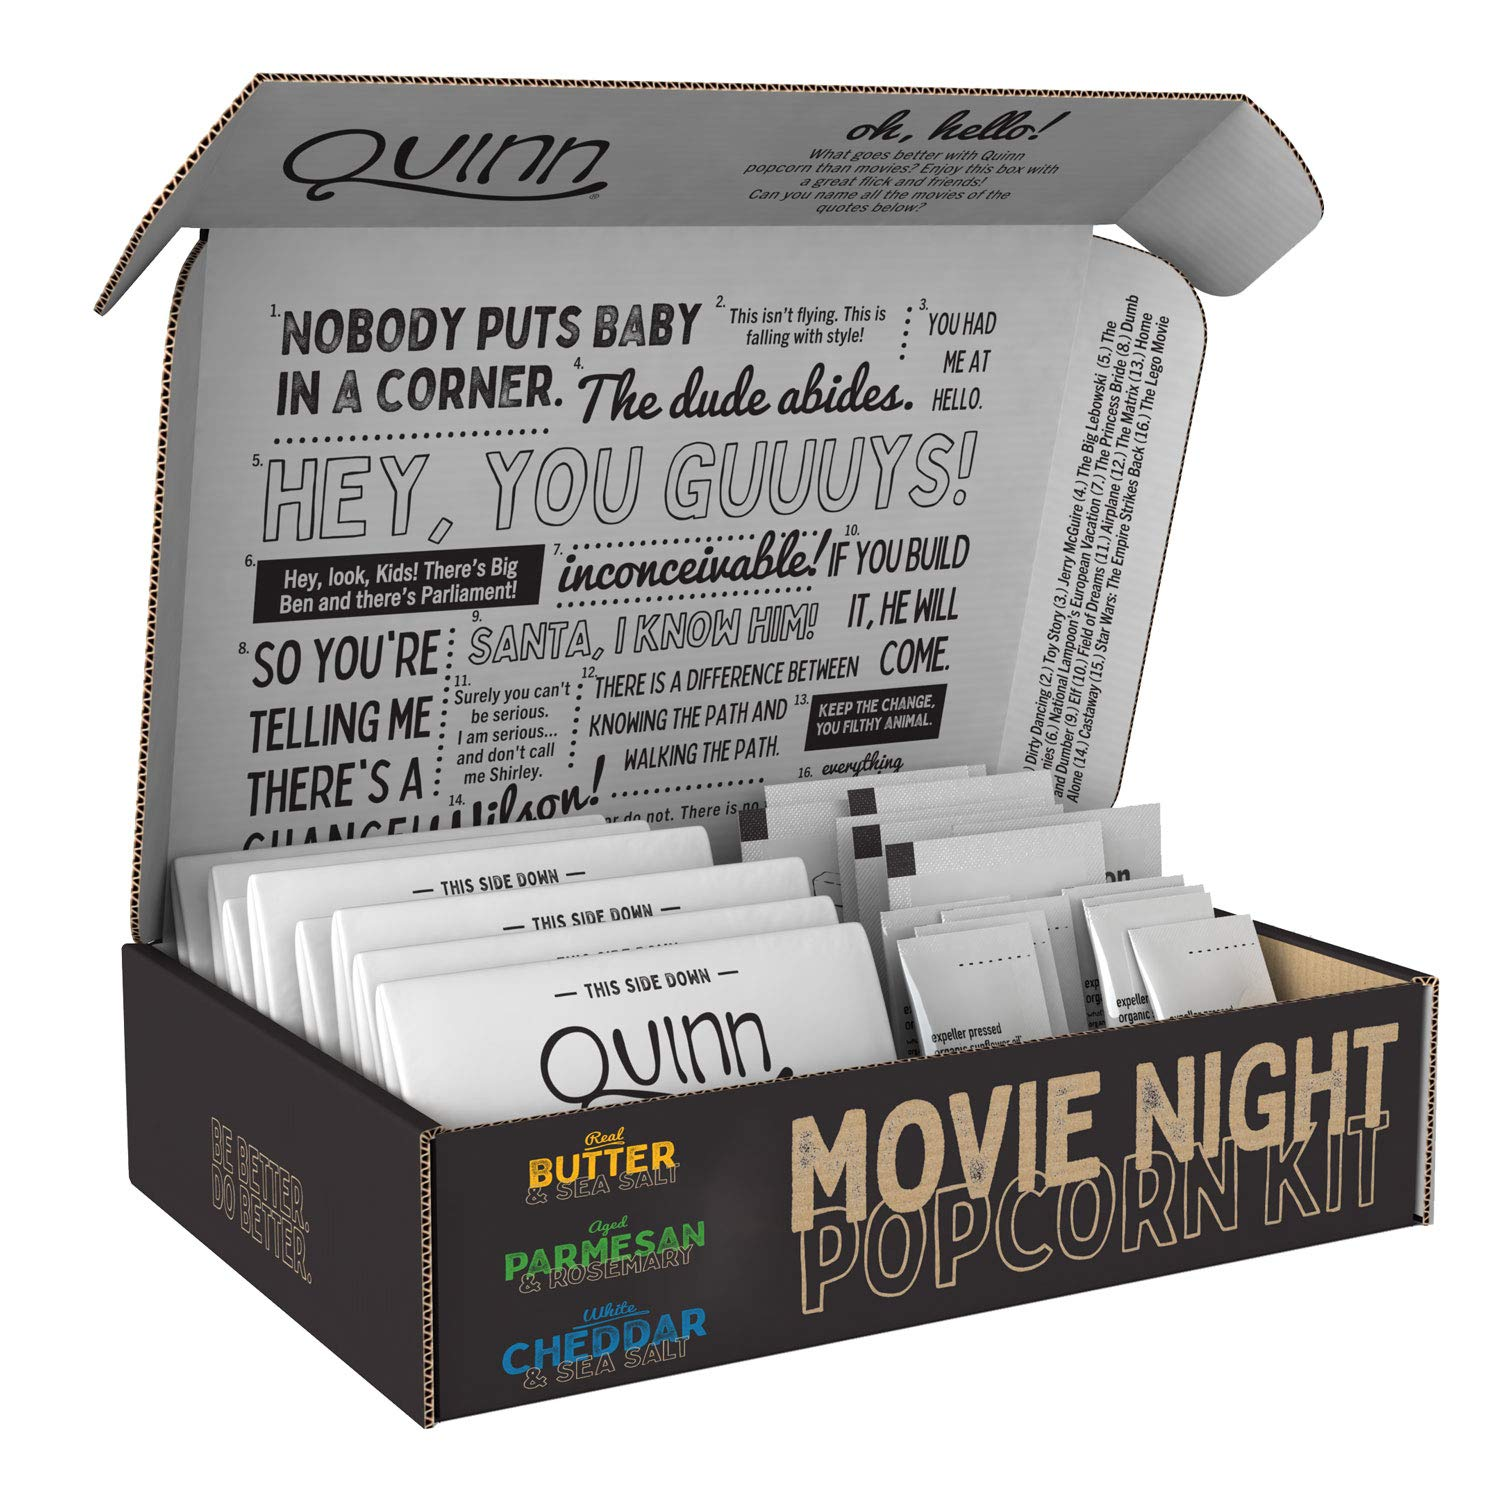 Quinn Movie Night Microwave Popcorn Variety Pack (3 Bags Butter, 3 Bags Parmesan Rosemary, 3 Cheddar), 9 Bags Total